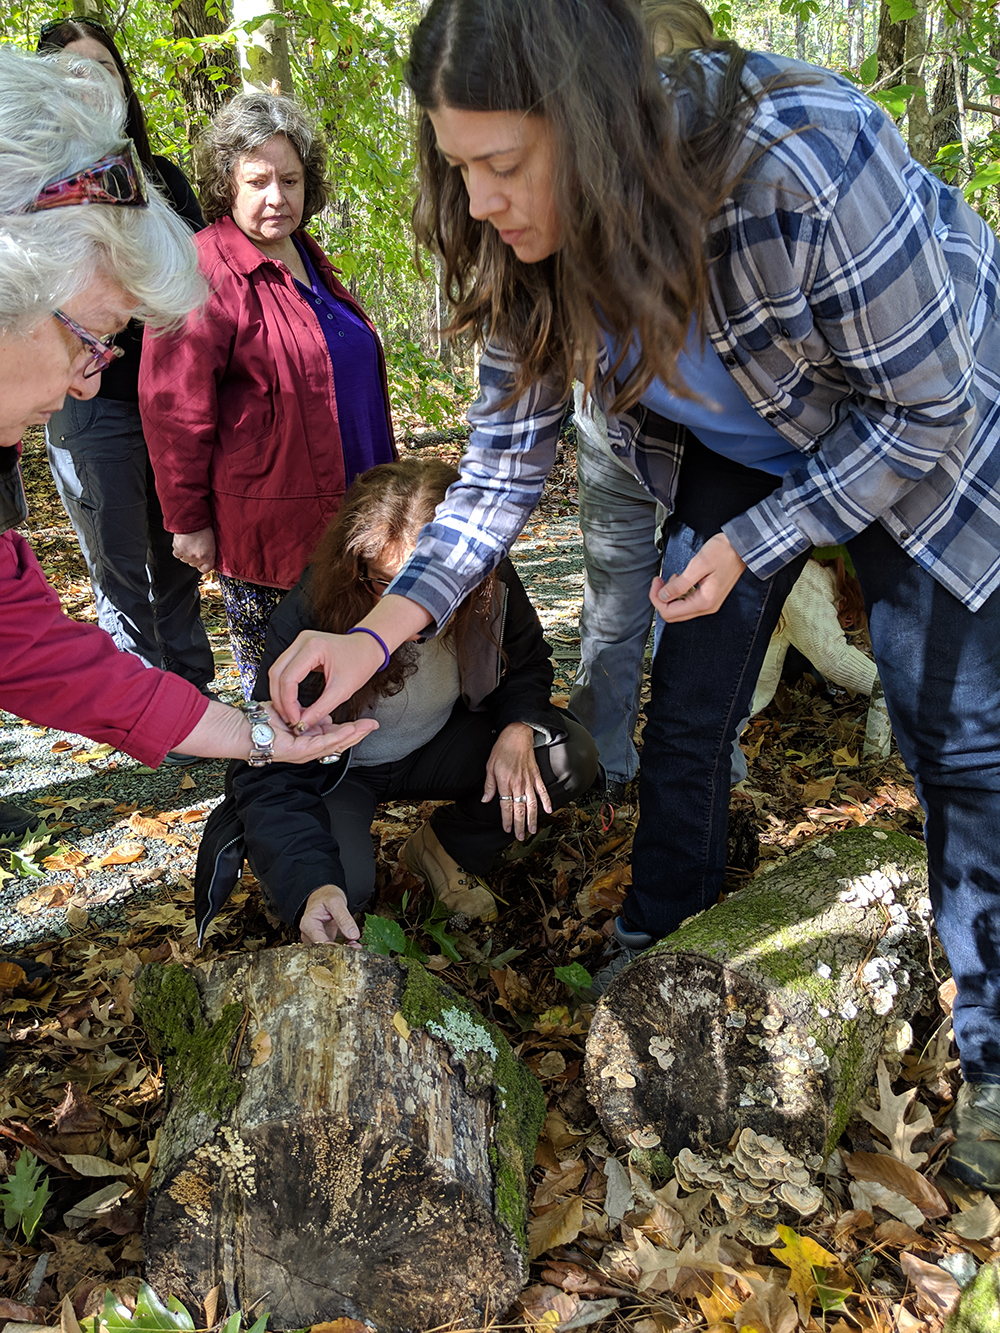 Susannah Goldston helps identify mushrooms on the walk. Photo by Debbie Roos.